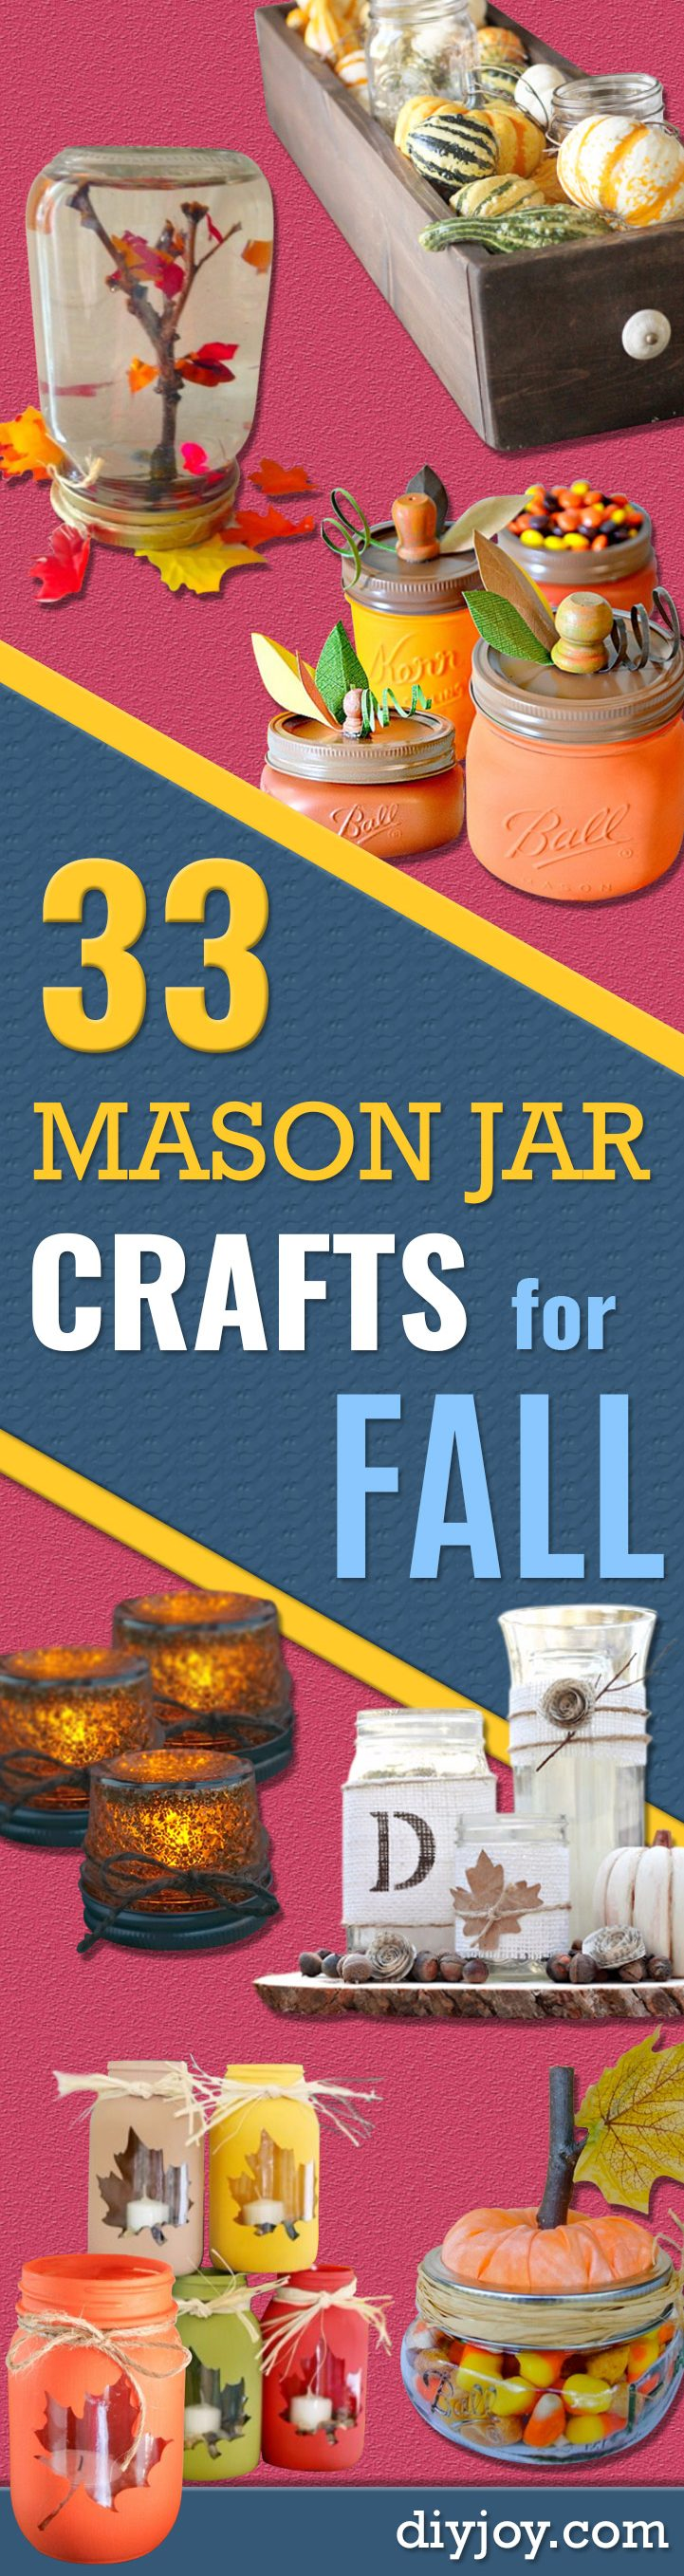 Best Mason Jar Crafts for Fall - DIY Mason Jar Ideas for Centerpieces, Wedding Decorations, Homemade Gifts, Craft Projects with Leaves, Flowers and Burlap, Painted Art, Candles and Luminaries for Cool Home Decor